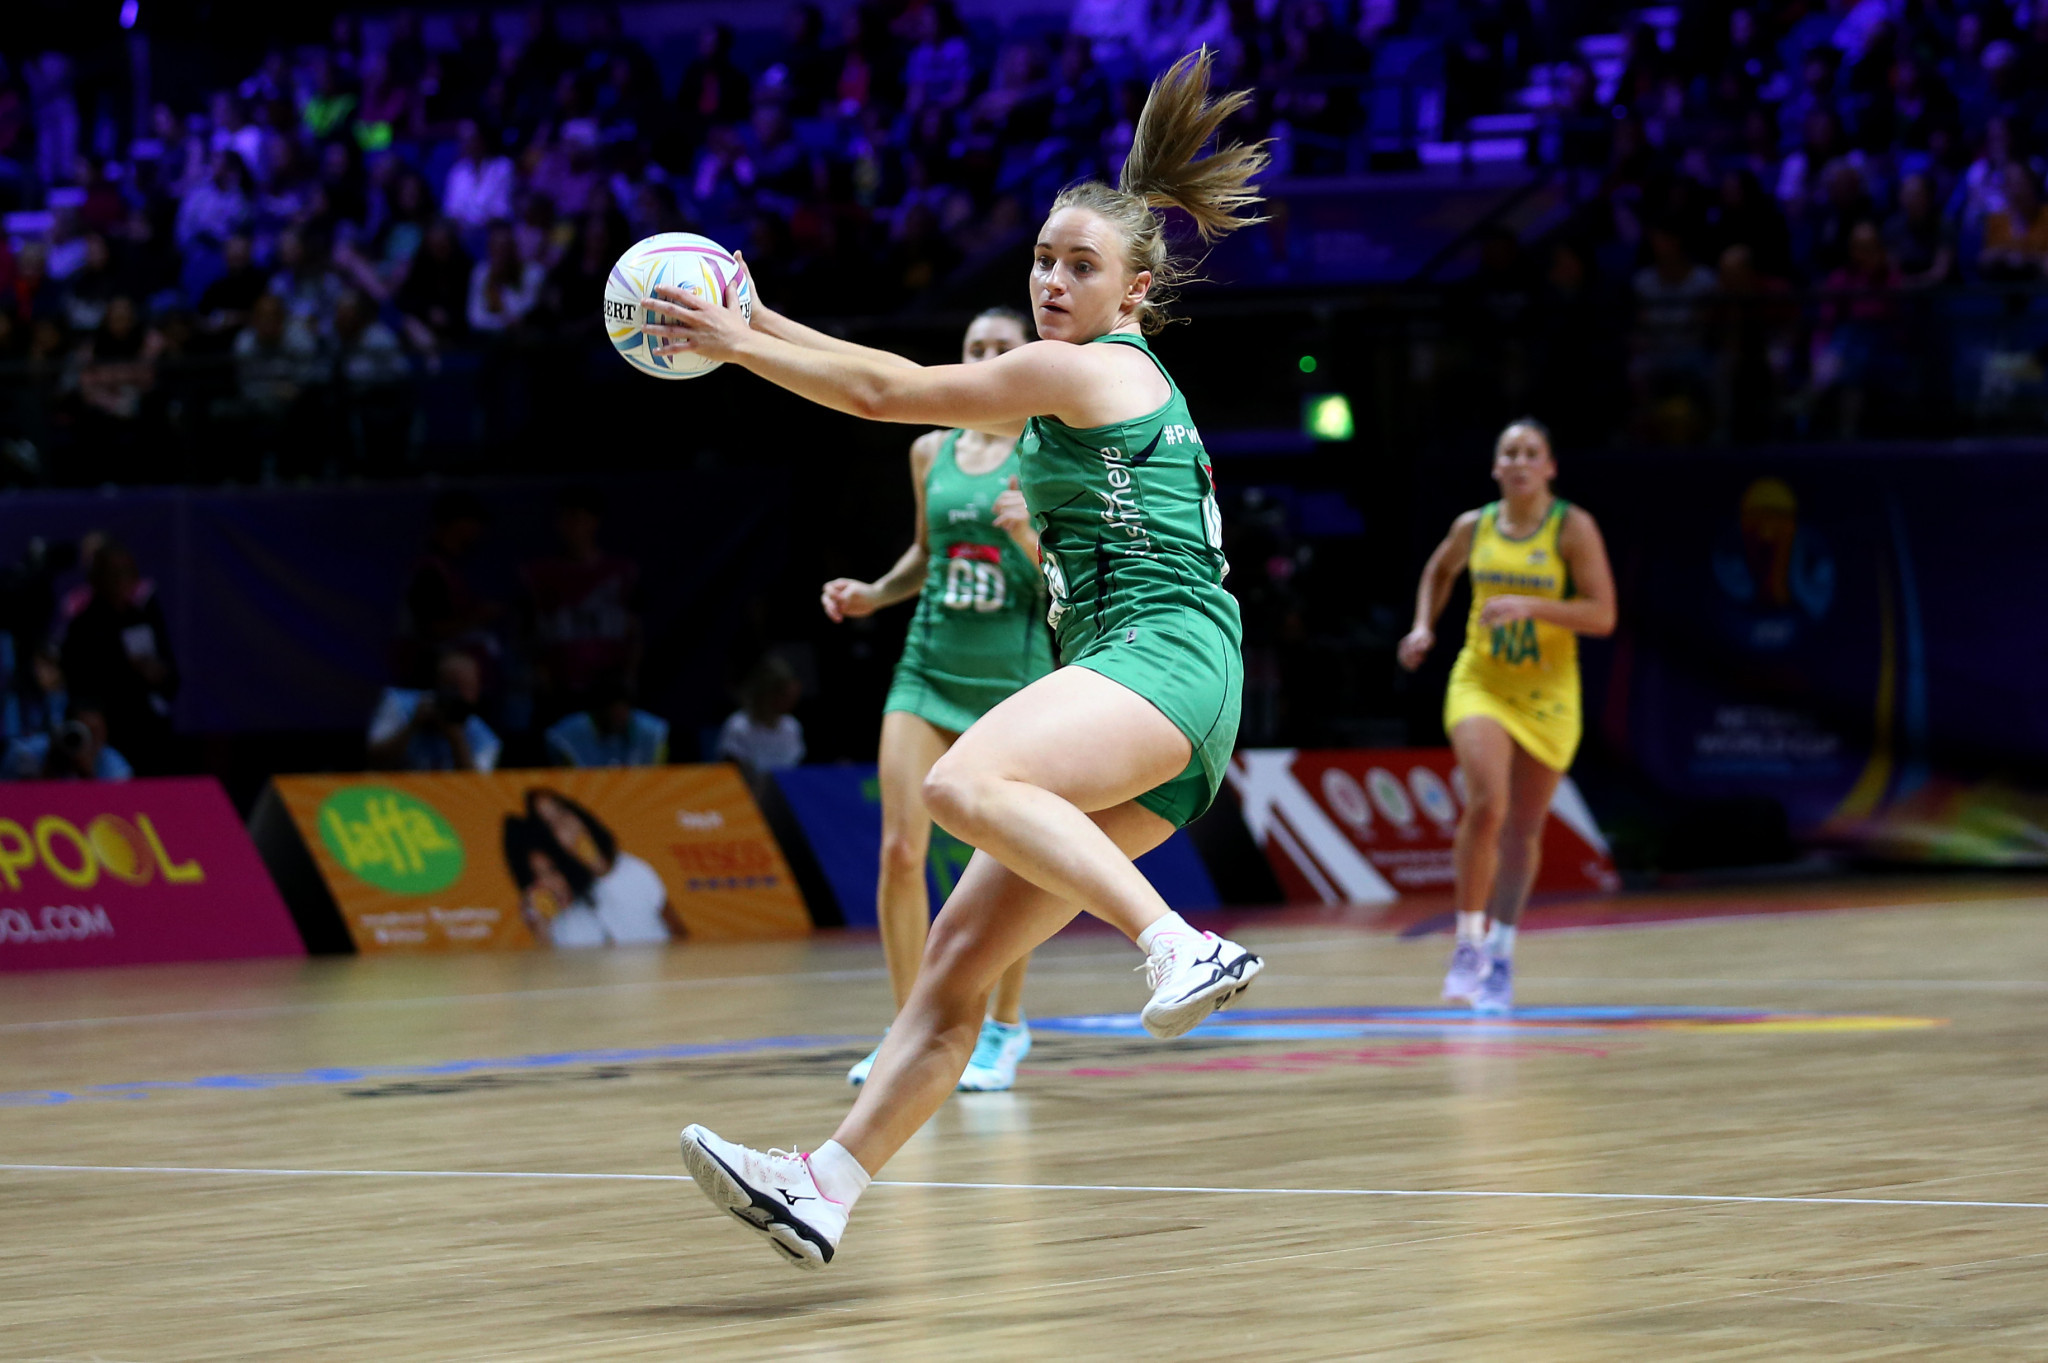 Rice targets Birmingham 2022 after fourth appointment as Northern Ireland netball head coach